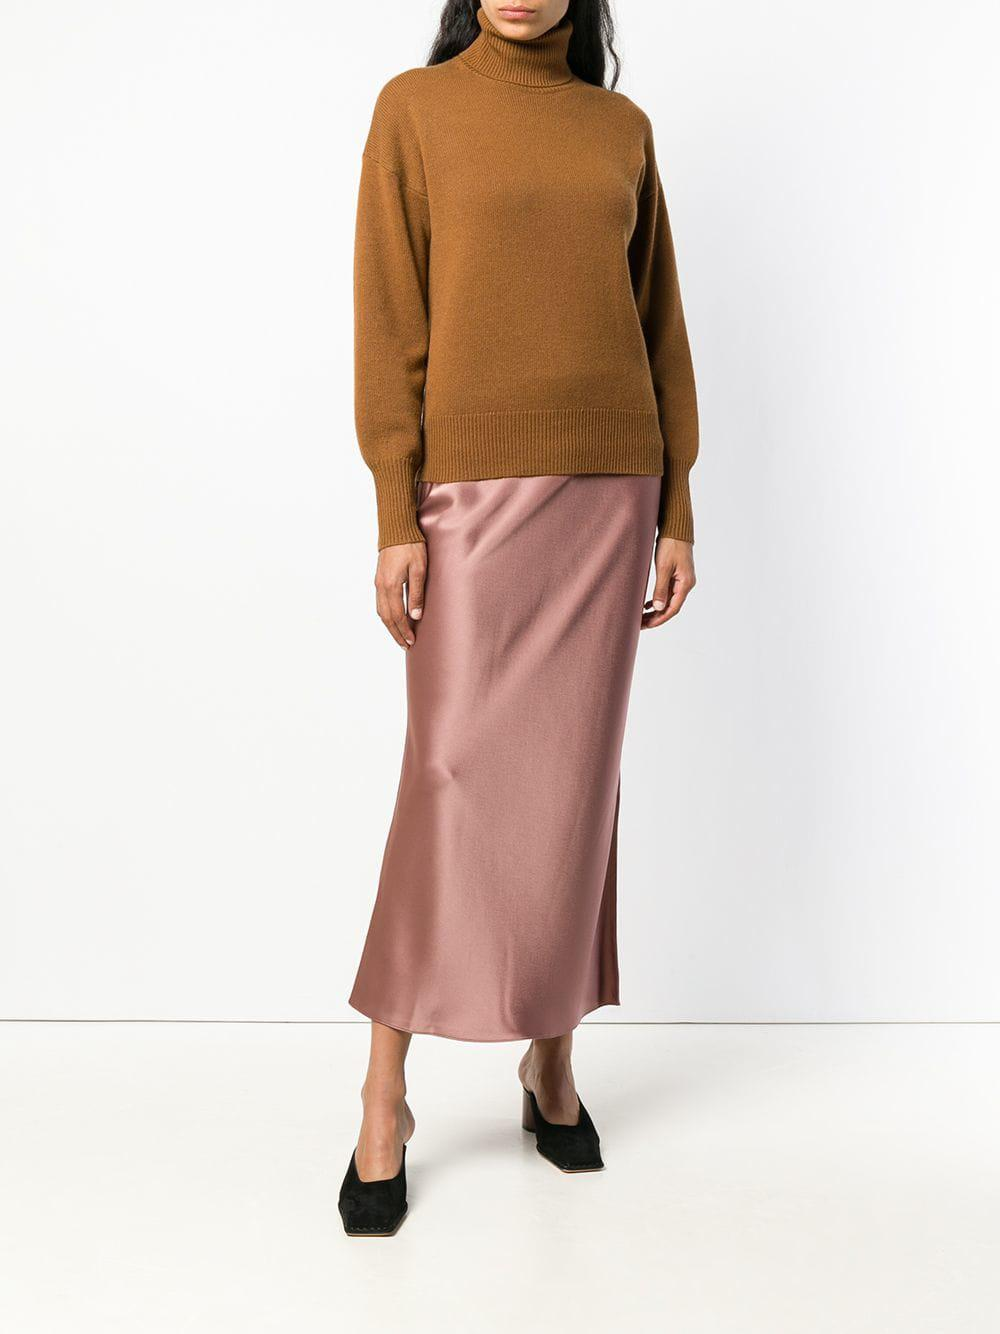 86817eb6ac9c2 Lyst - Theory Cashmere Turtleneck Sweater in Brown